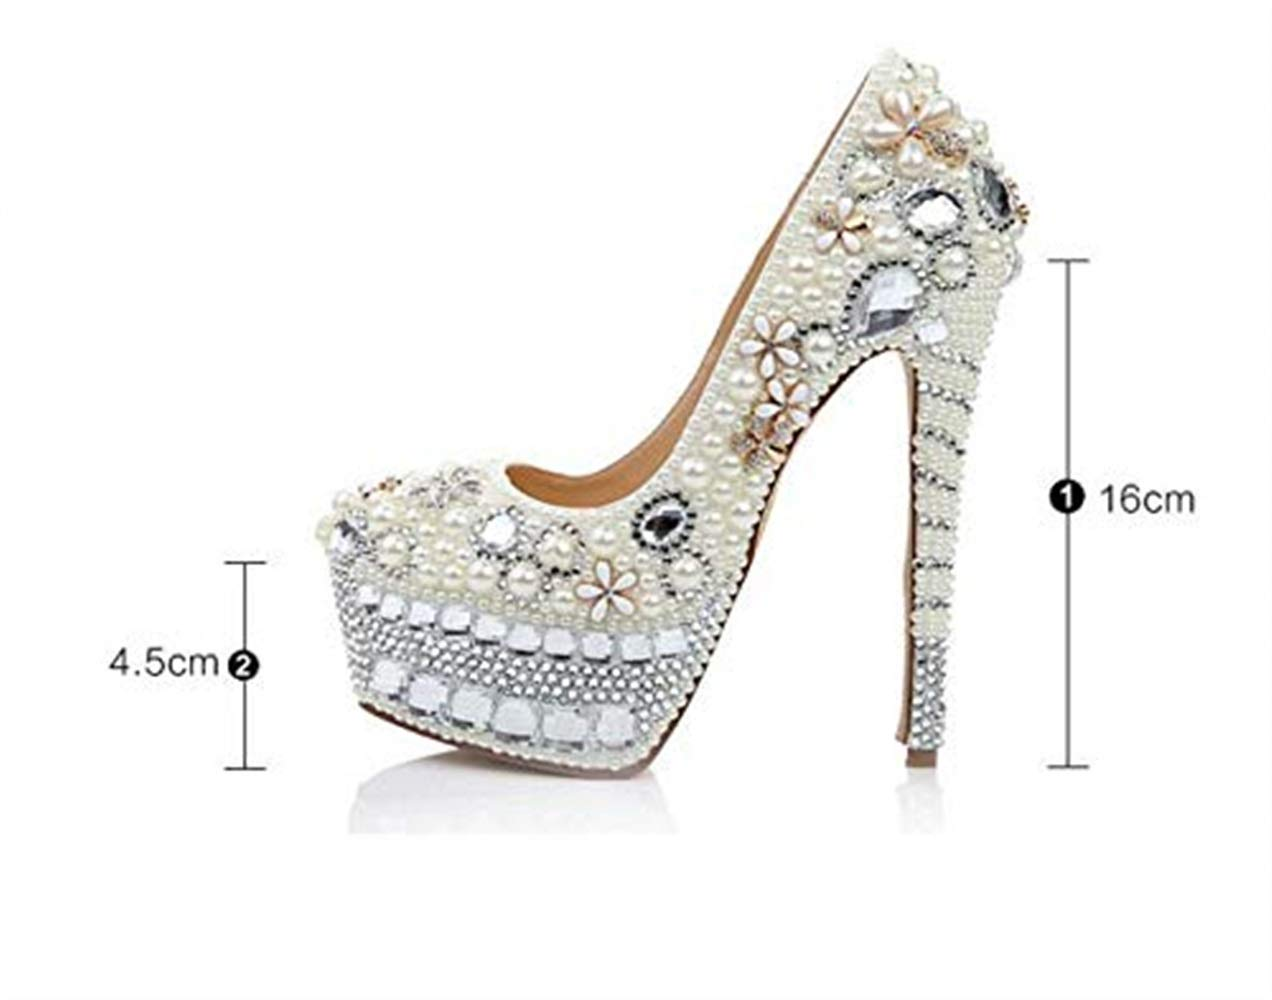 Moontang Dame Luxury Handmade Pearl High High High Heels Bridal hochwertige Kristallschuhe Sexy Night Club Wasserdichte Plattform Tanzschuhe 16cm (Farbe   Weiß Größe   4.5UK(Foot Length 24cm)) f01bd2